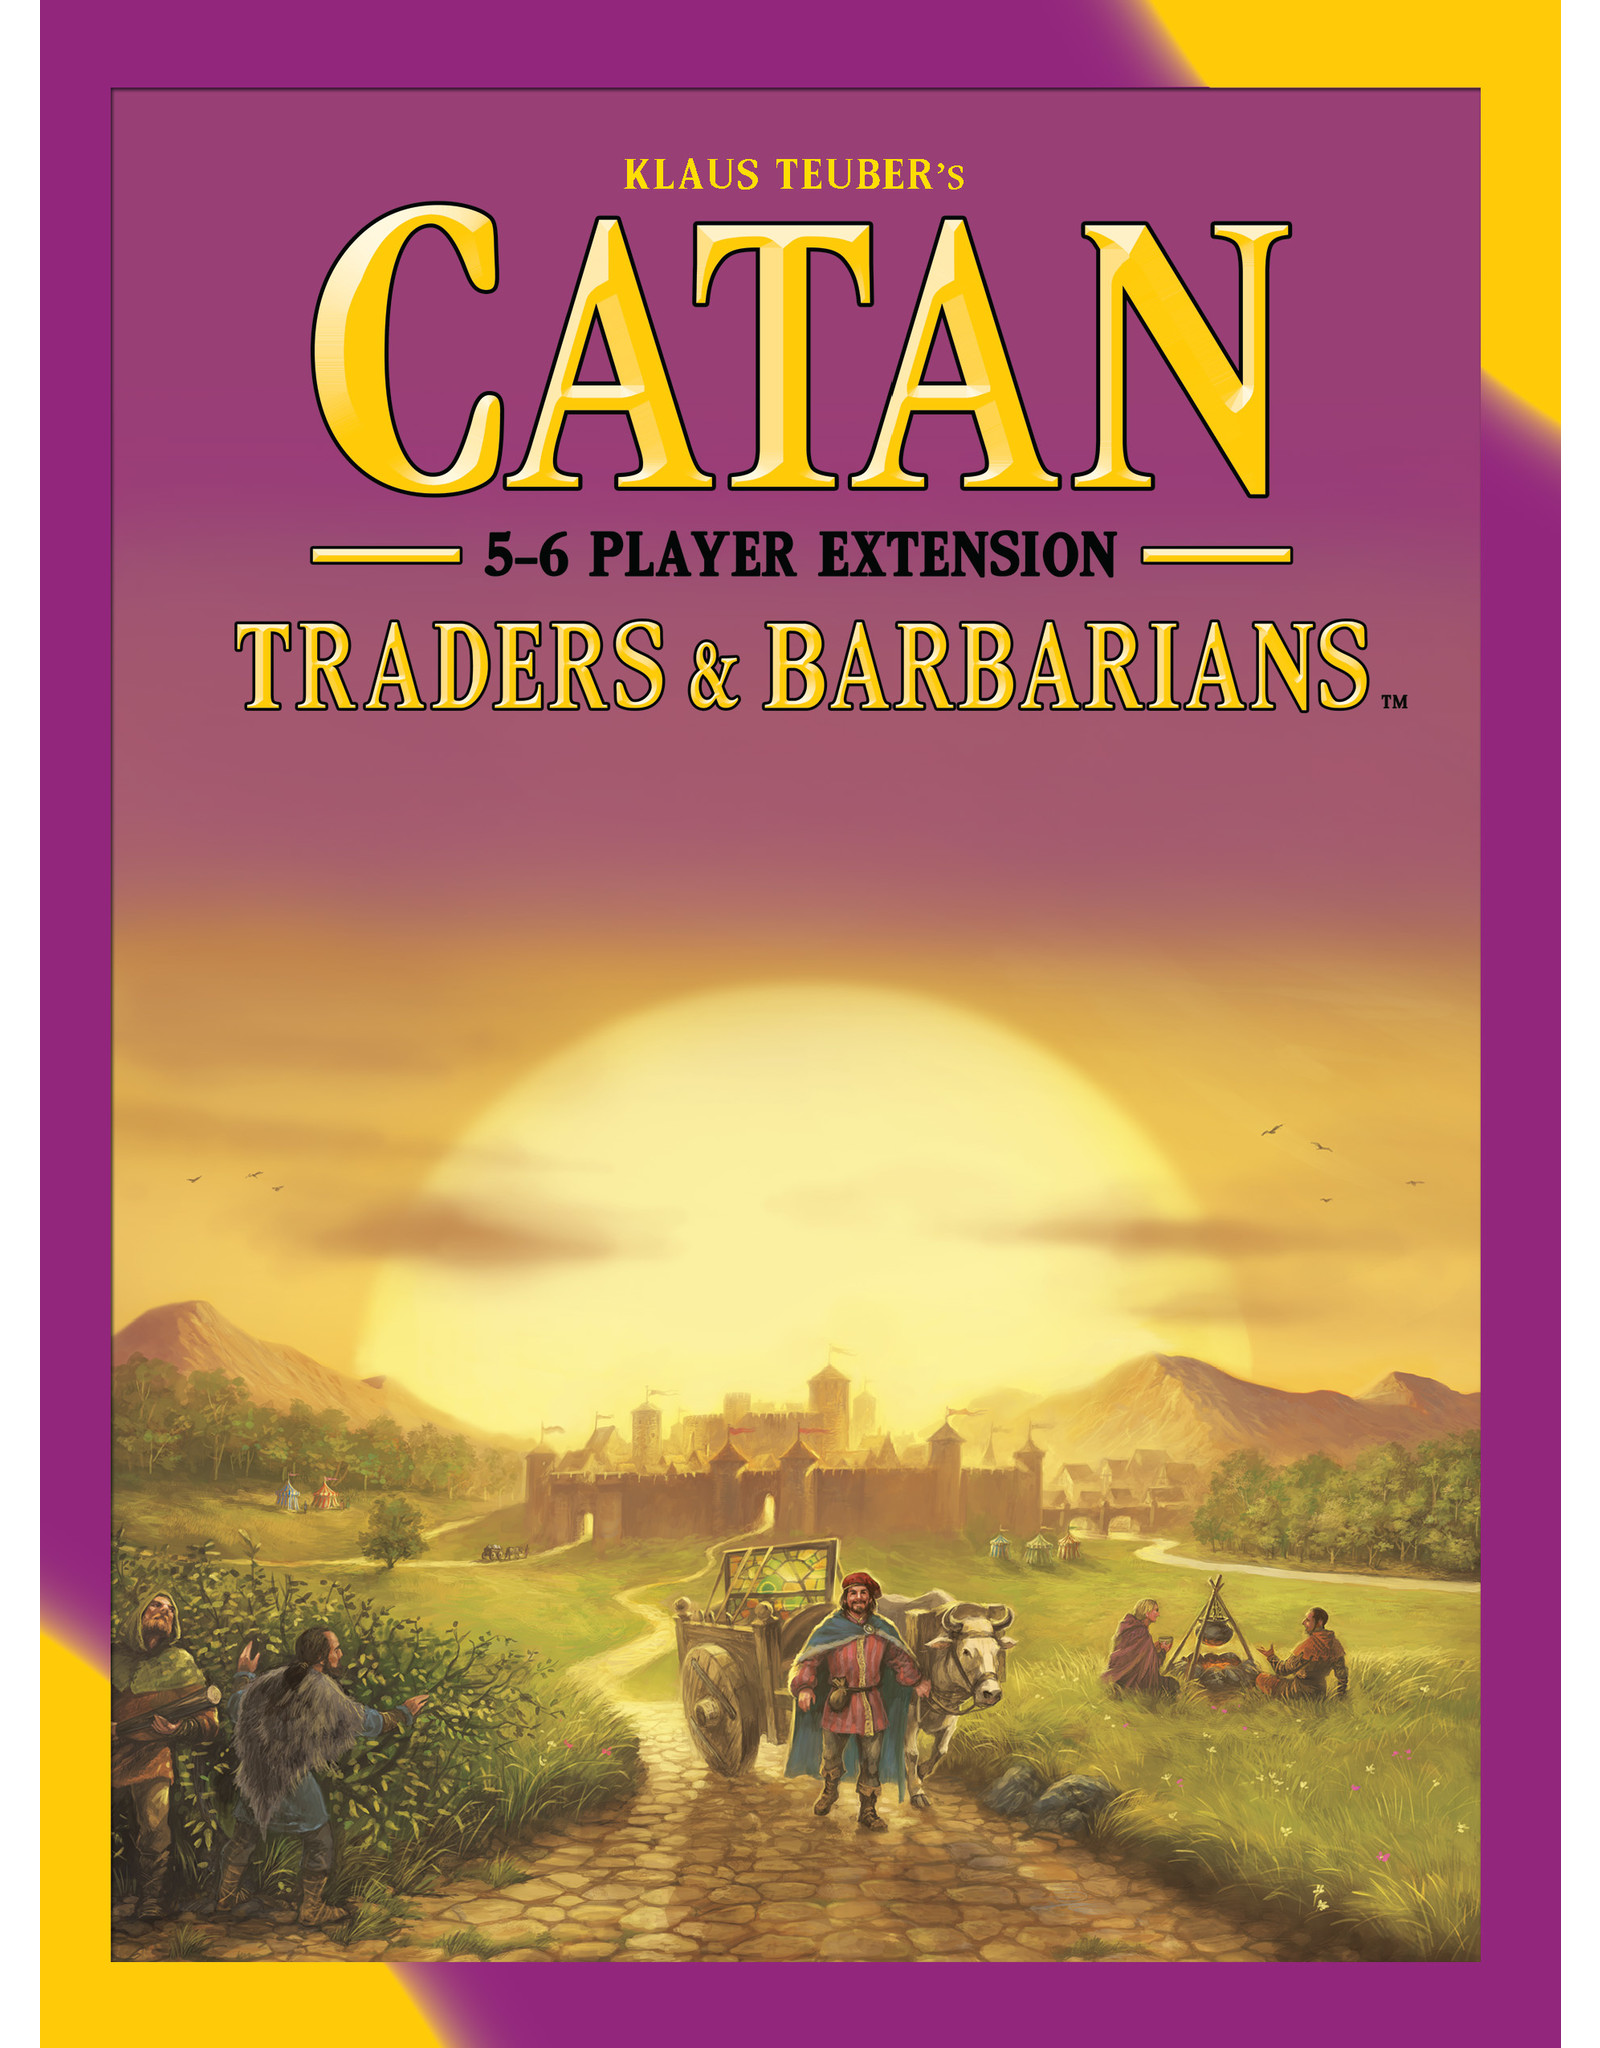 Catan Studios Catan Traders and Barbarians 5-6 player expansion